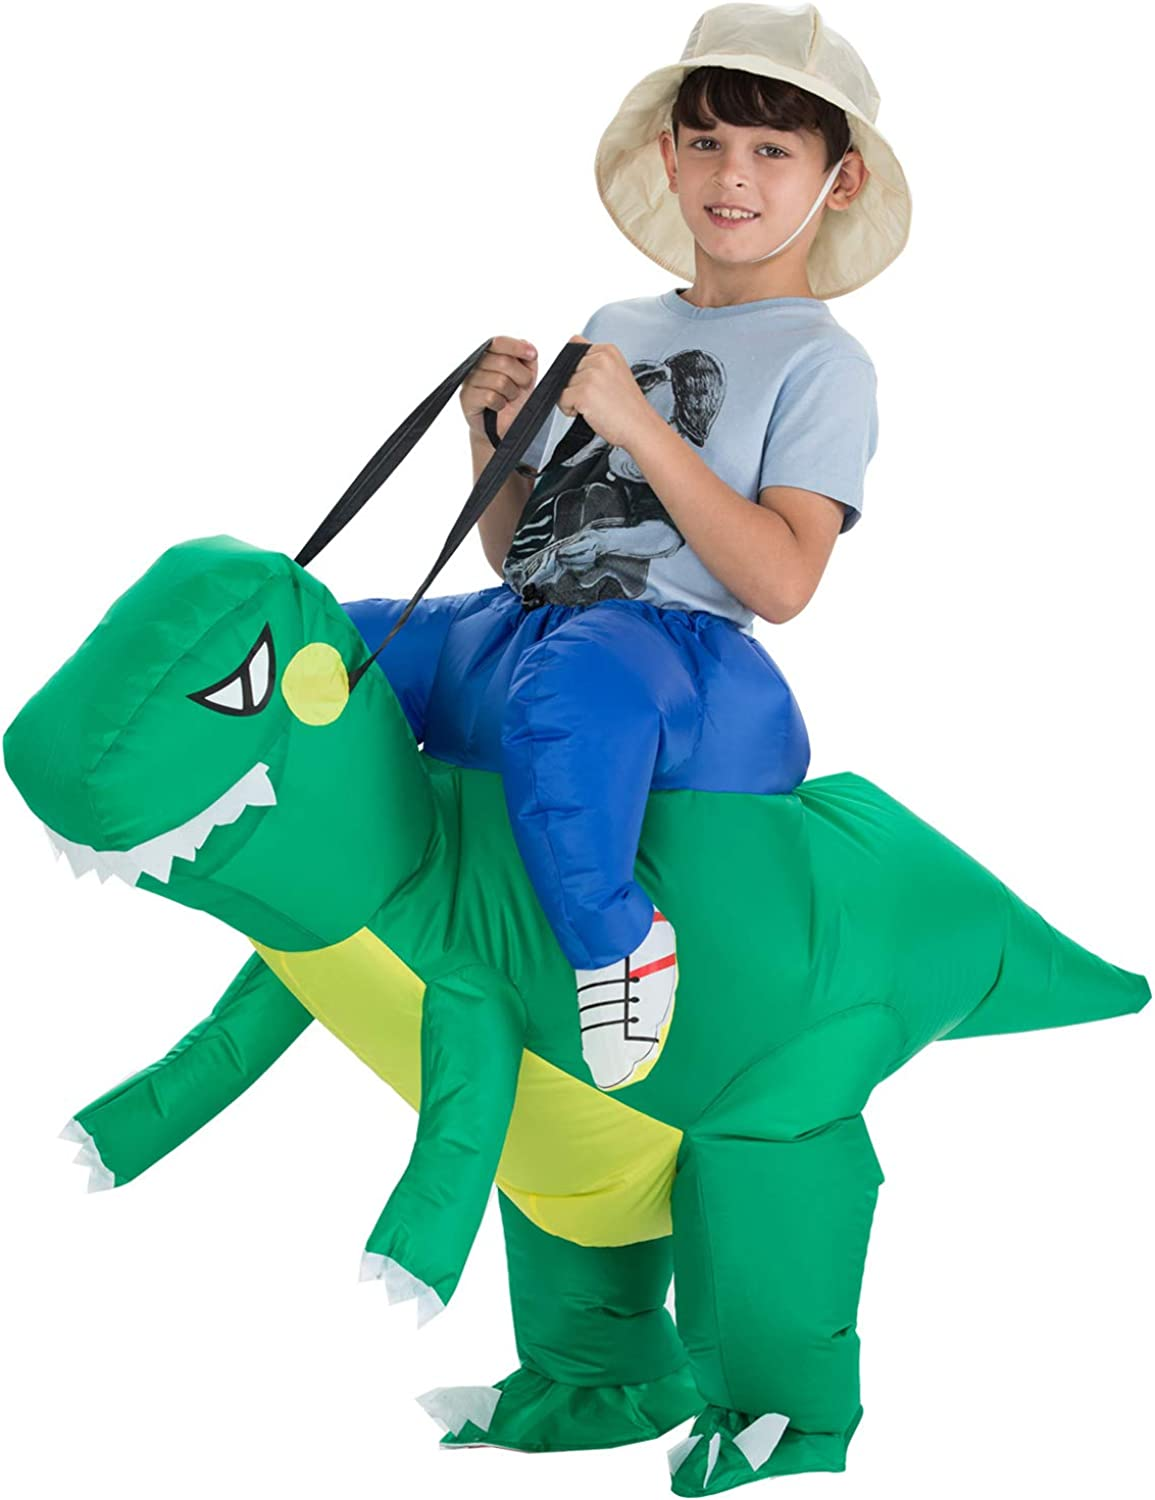 TOLOCO Inflatable Dinosaur T-REX Costume   Inflatable Costumes for Kids  Halloween Costume   Blow Up Costume